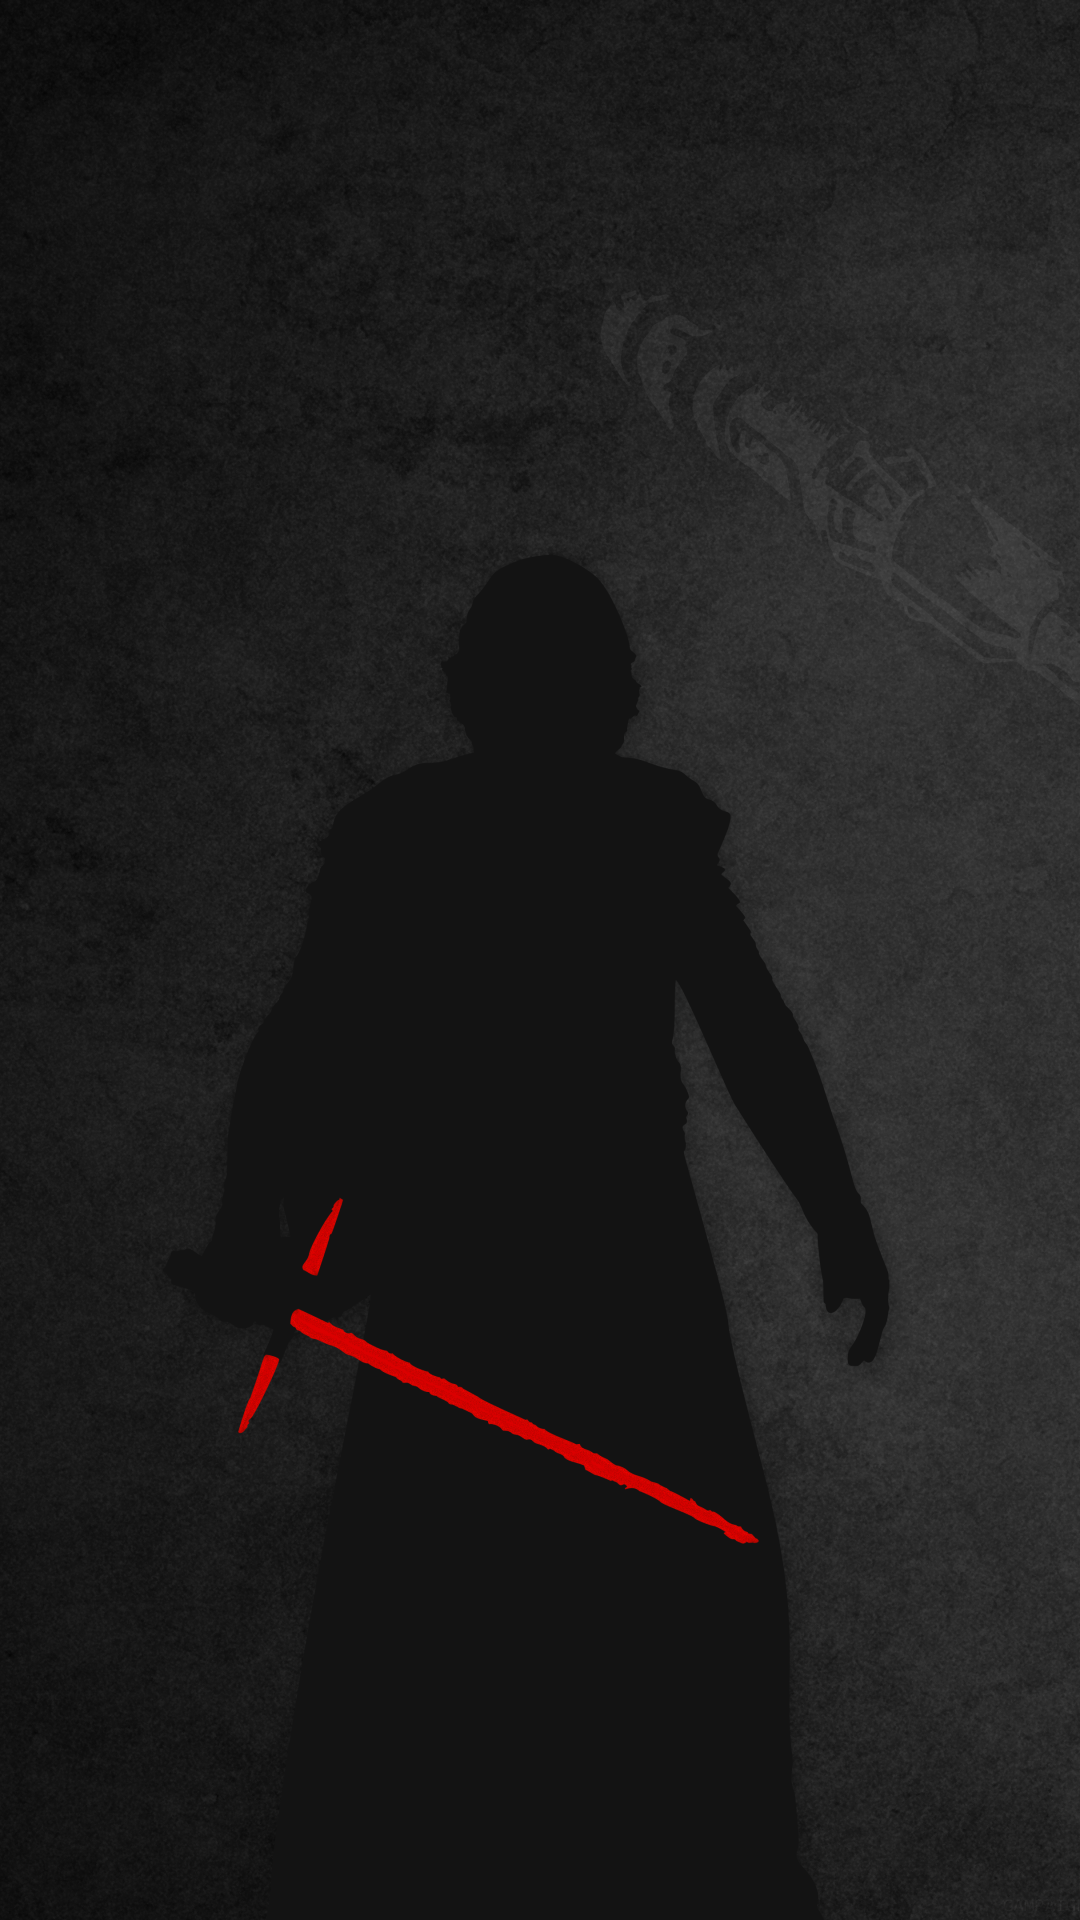 8K UHD Star Wars The Last Jedi Ben Solo Wallpaper Movie 1080x1920 Mobile